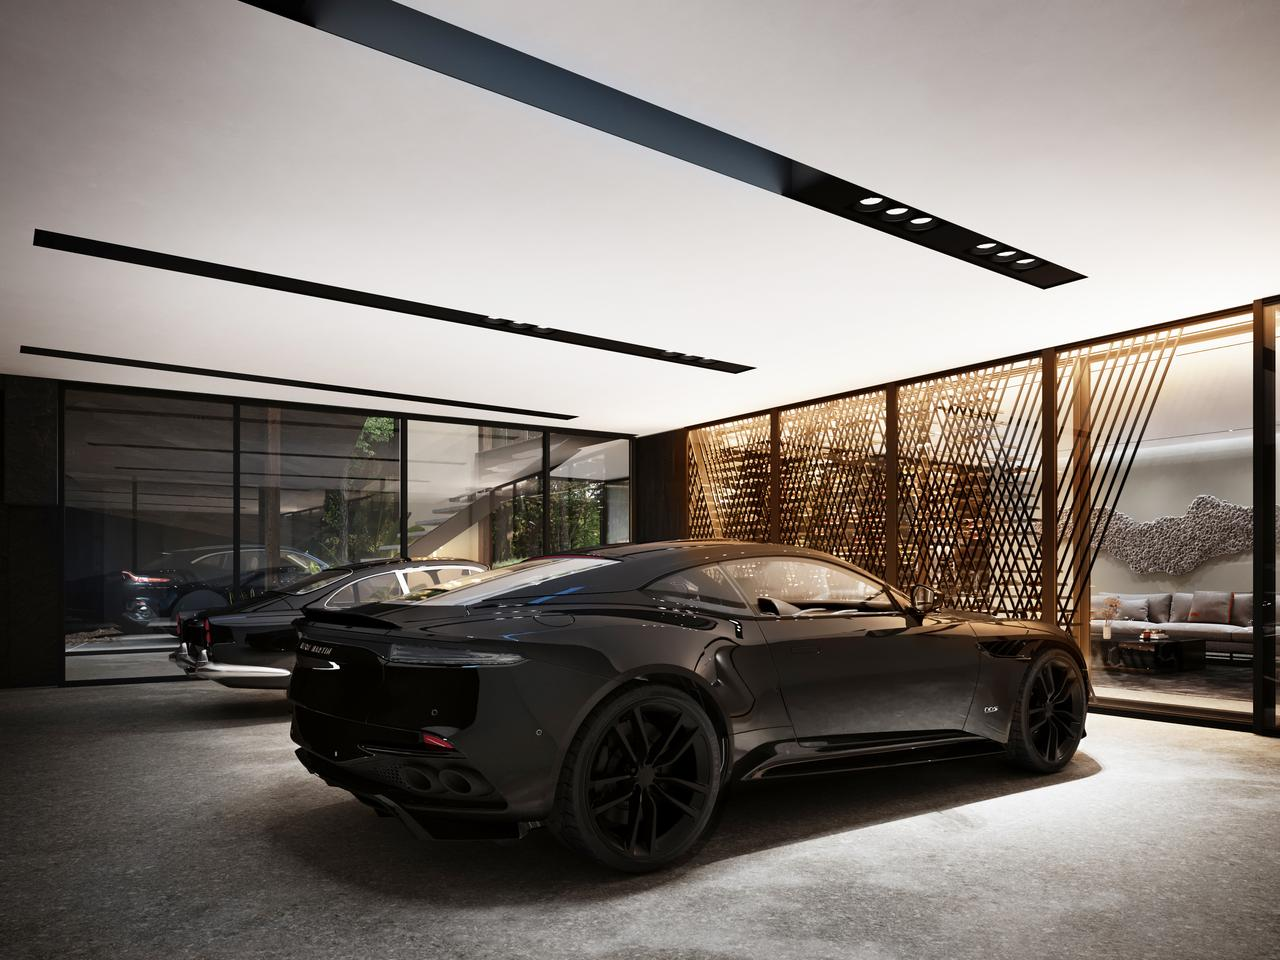 Sylvan Rock will come with an impressive three car garage and an Aston Martin DBX is recommended as an excellent complement to the home, but you'll need to supply your own